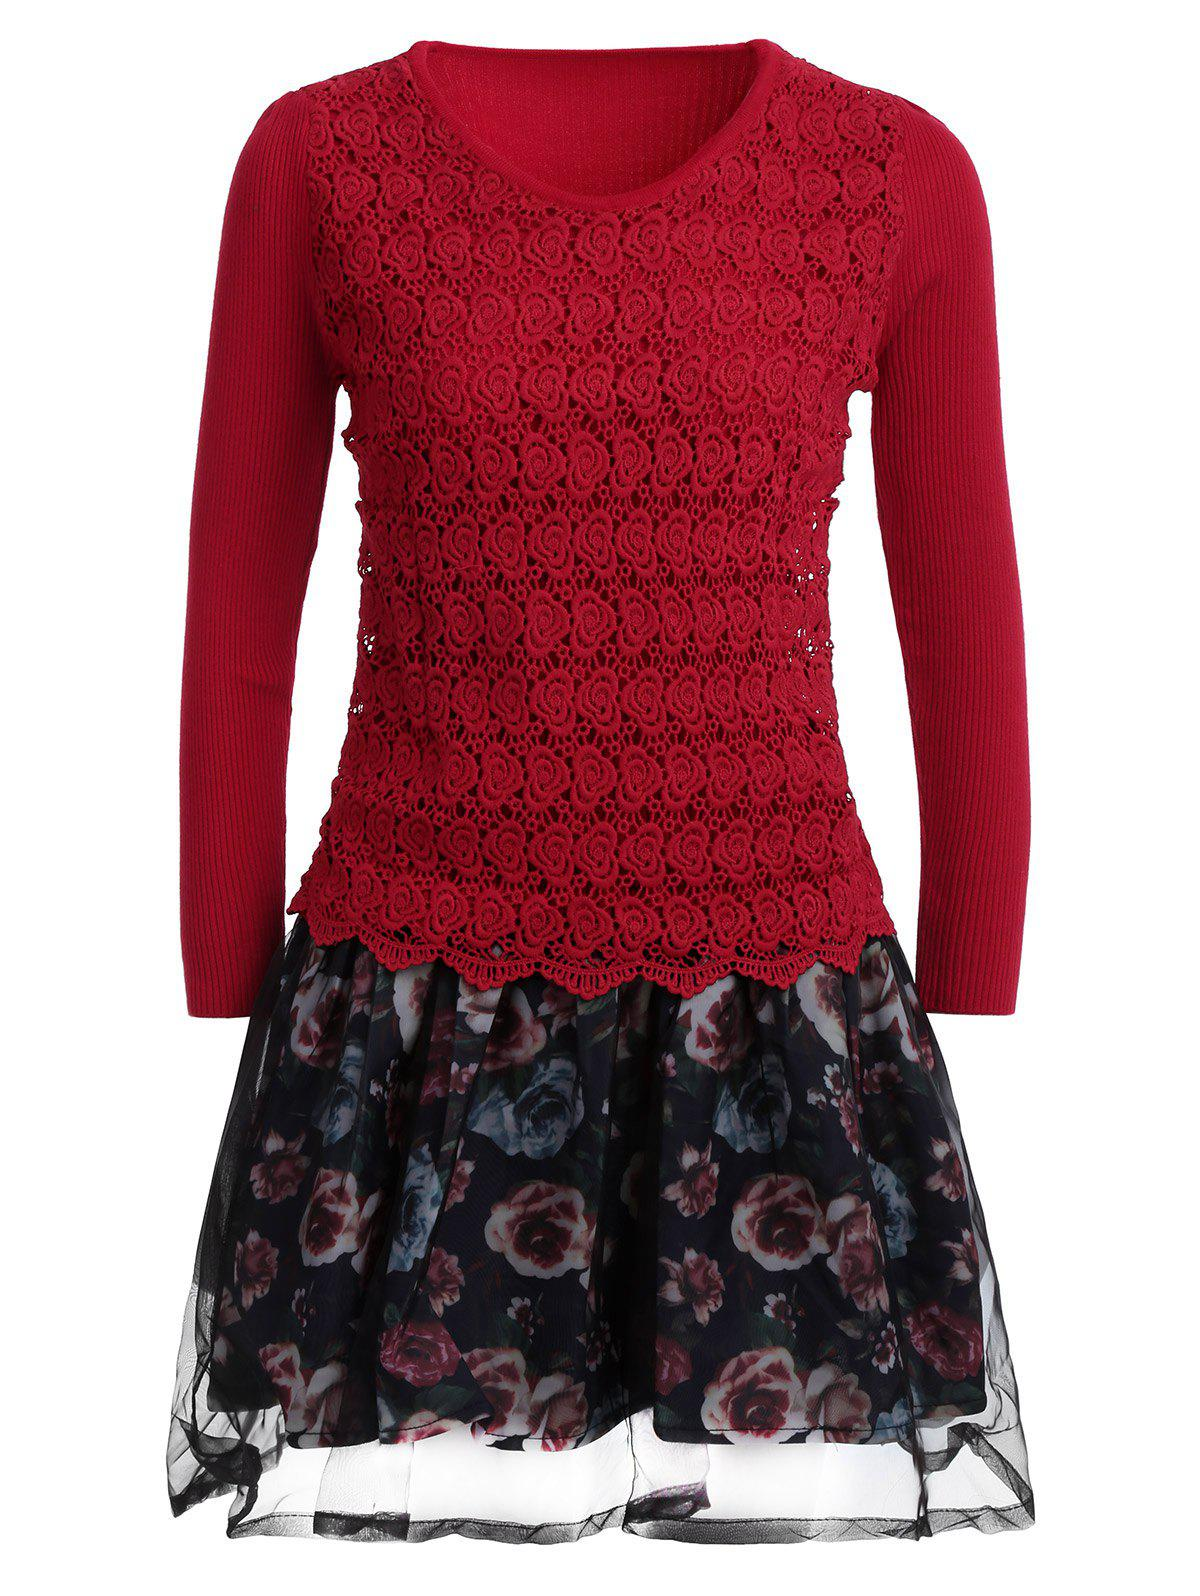 Chic Organza Spliced Floral Layered Sweater Skater Dress